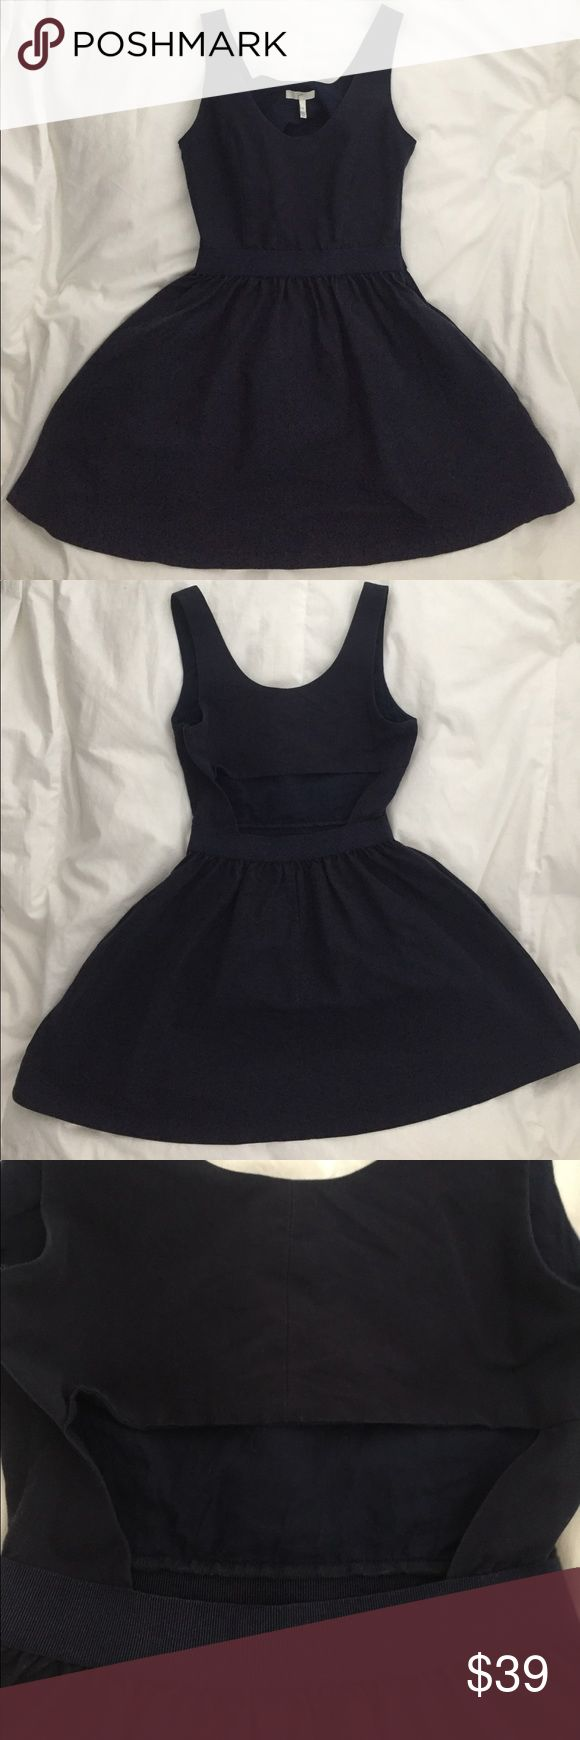 Super cute, navy blue, Joie cut out dress! This Joie dress is so perfect for summer BBQs. The cut out in the back is super cute and it has pockets! Would look great with wedges or some sparkly flats. Color is Navy blue! Joie Dresses Mini